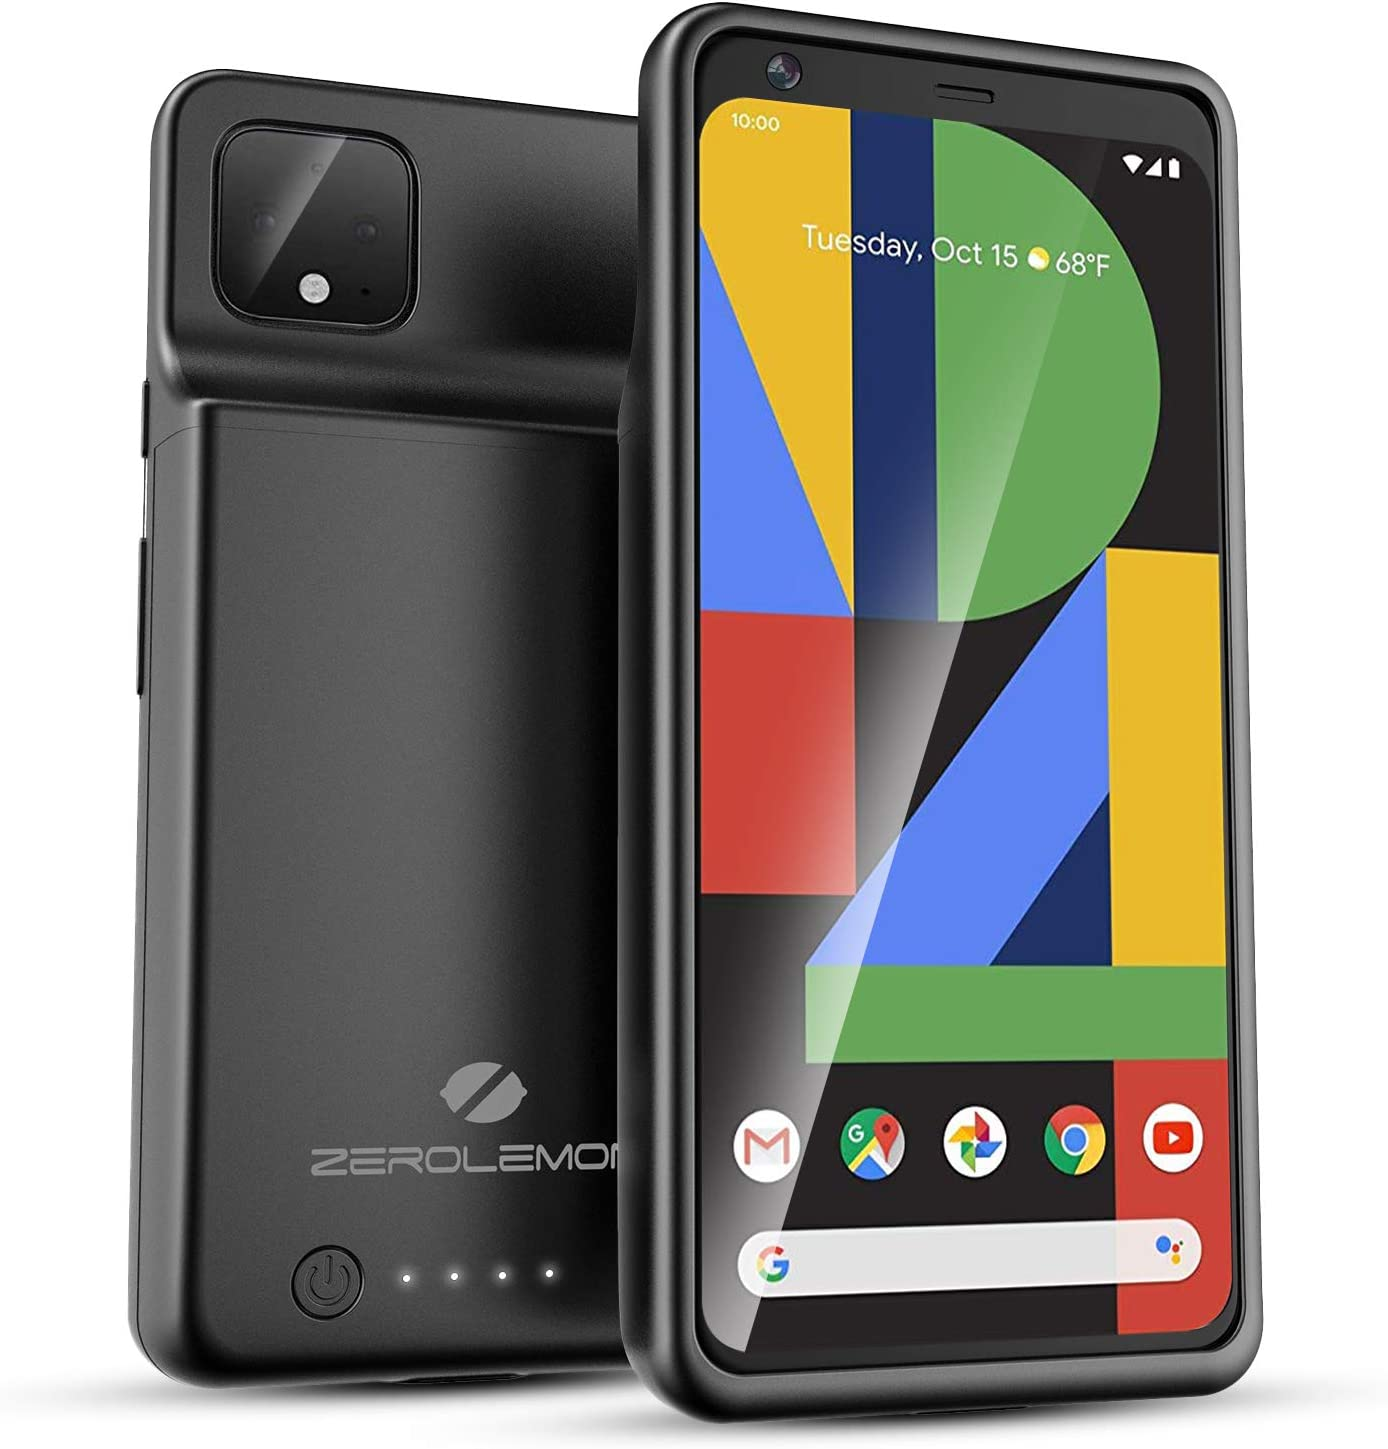 ZEROLEMON Google Pixel 4 Battery Case 9000mAh, Ultra Power Extended Rechargeable Battery Charging Case with Full Edge Protection for Pixel 4 - Black